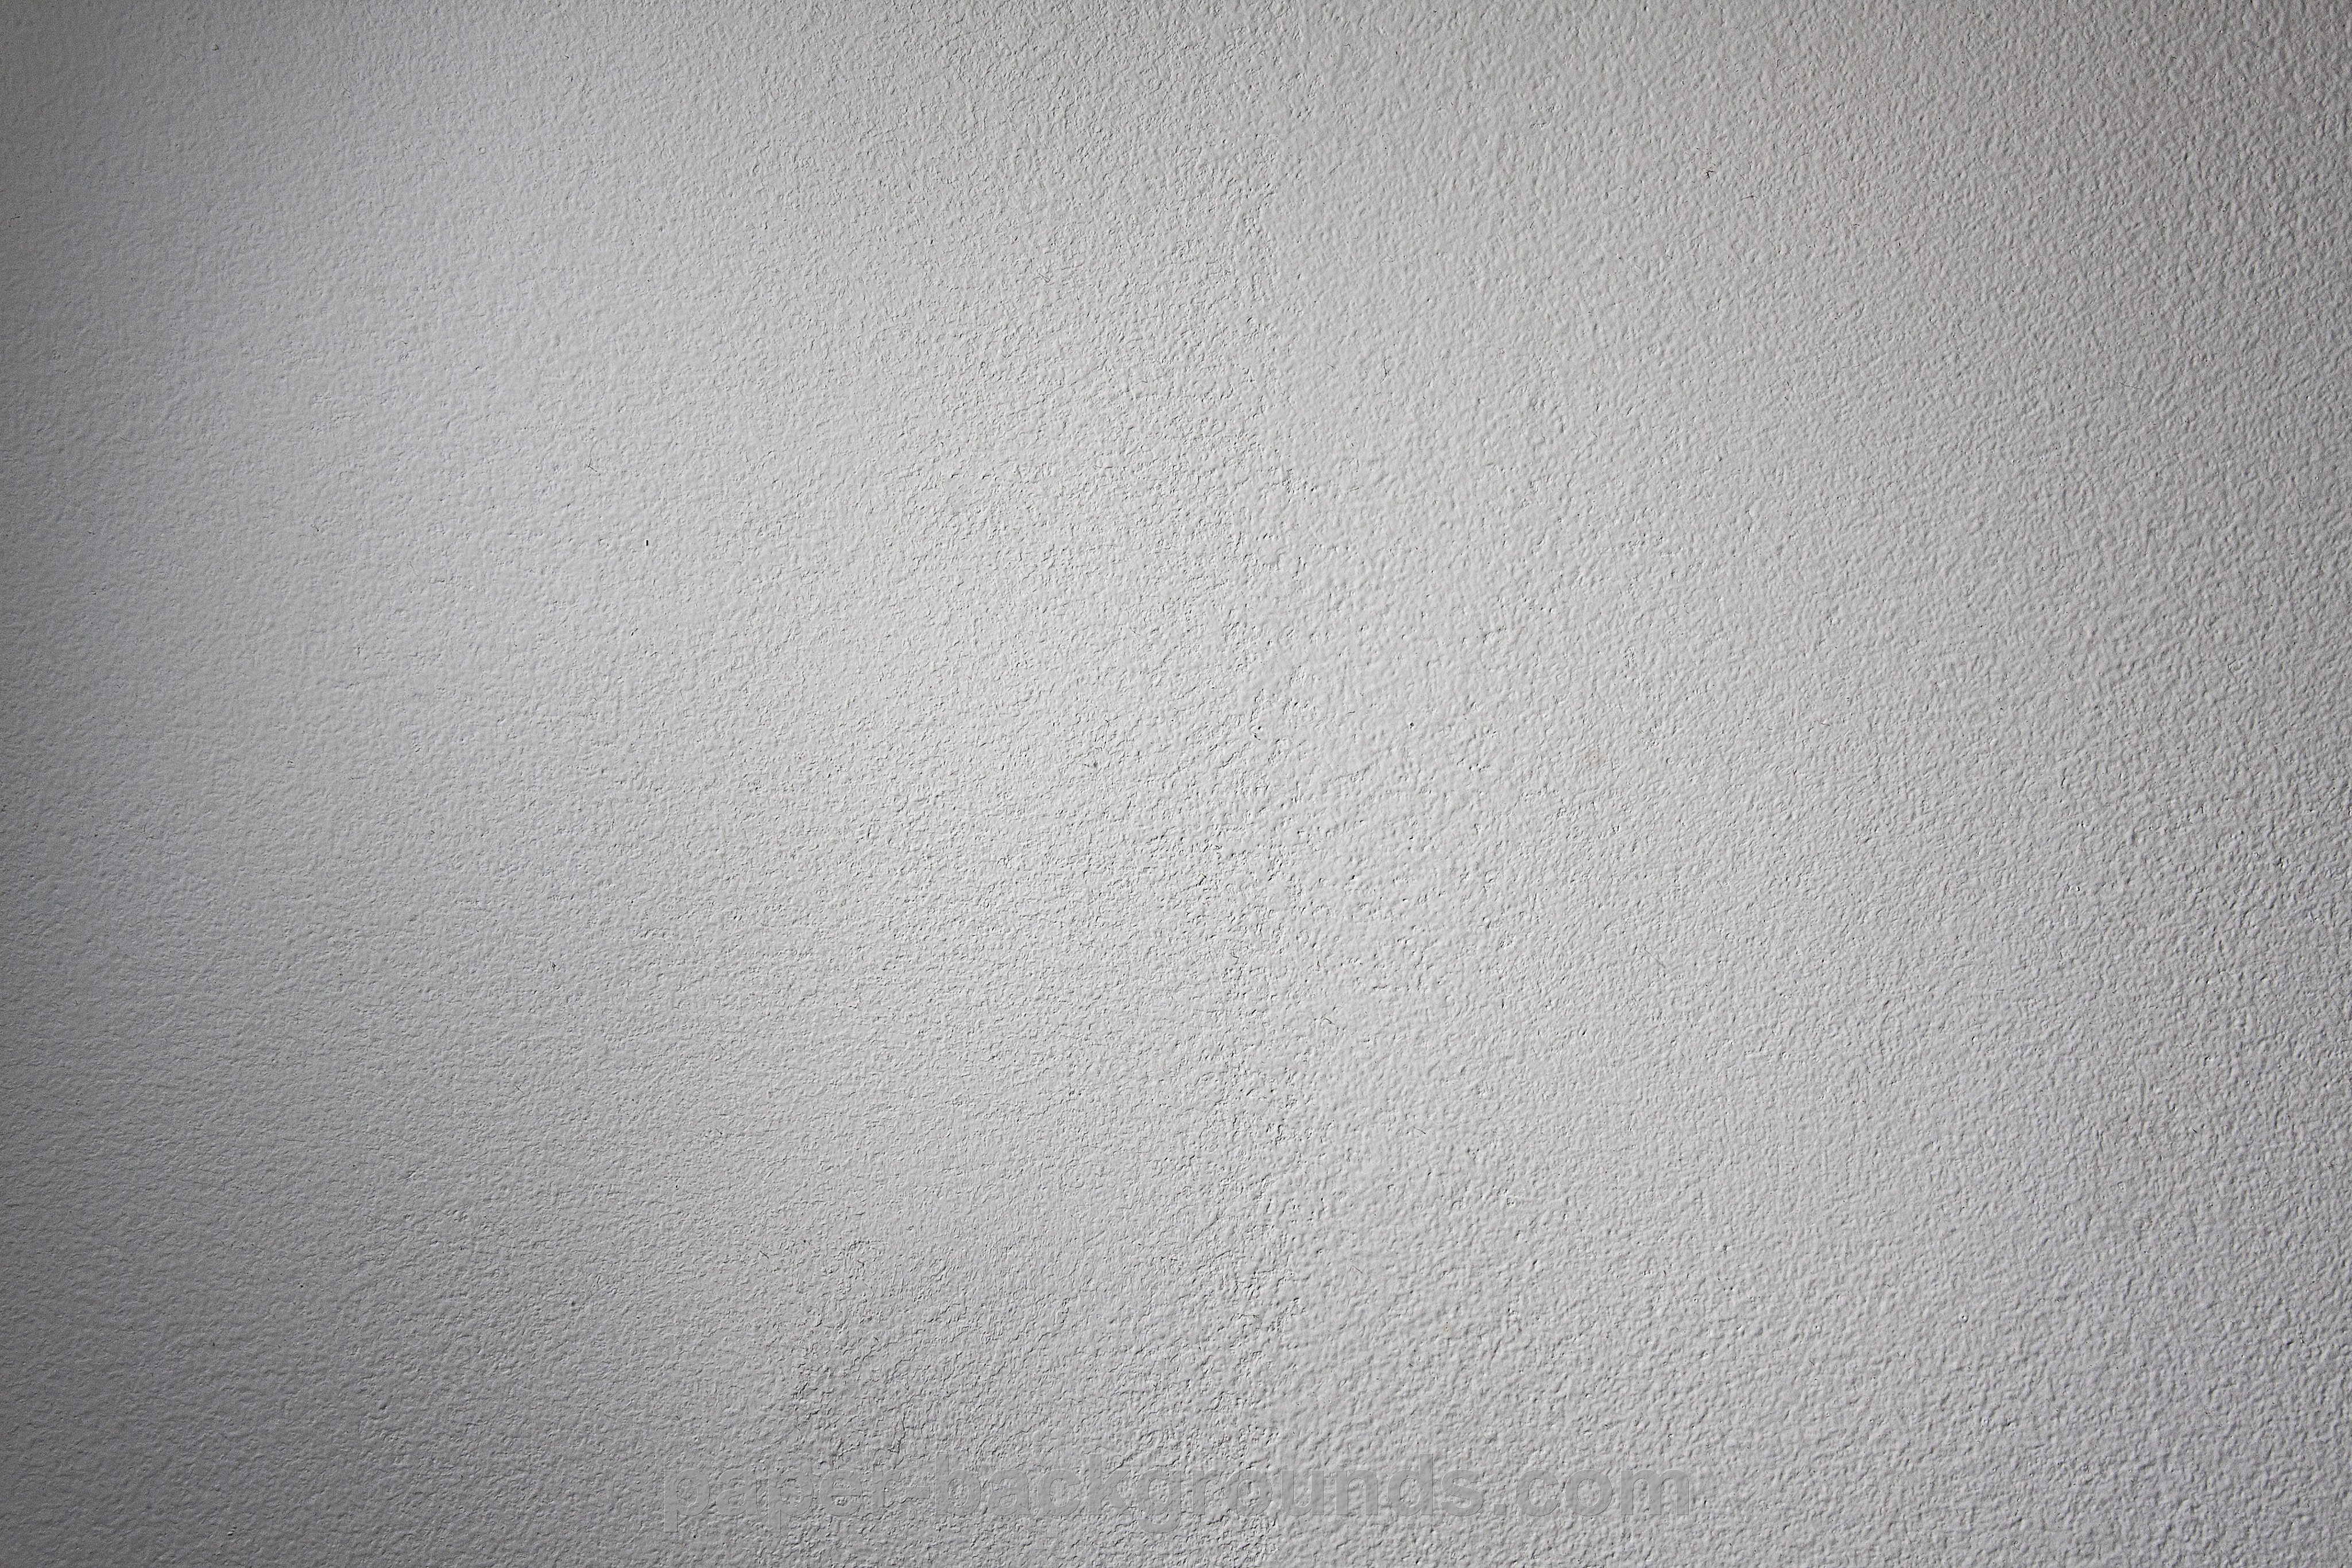 gray wall textured background Paper Backgrounds 4096x2731